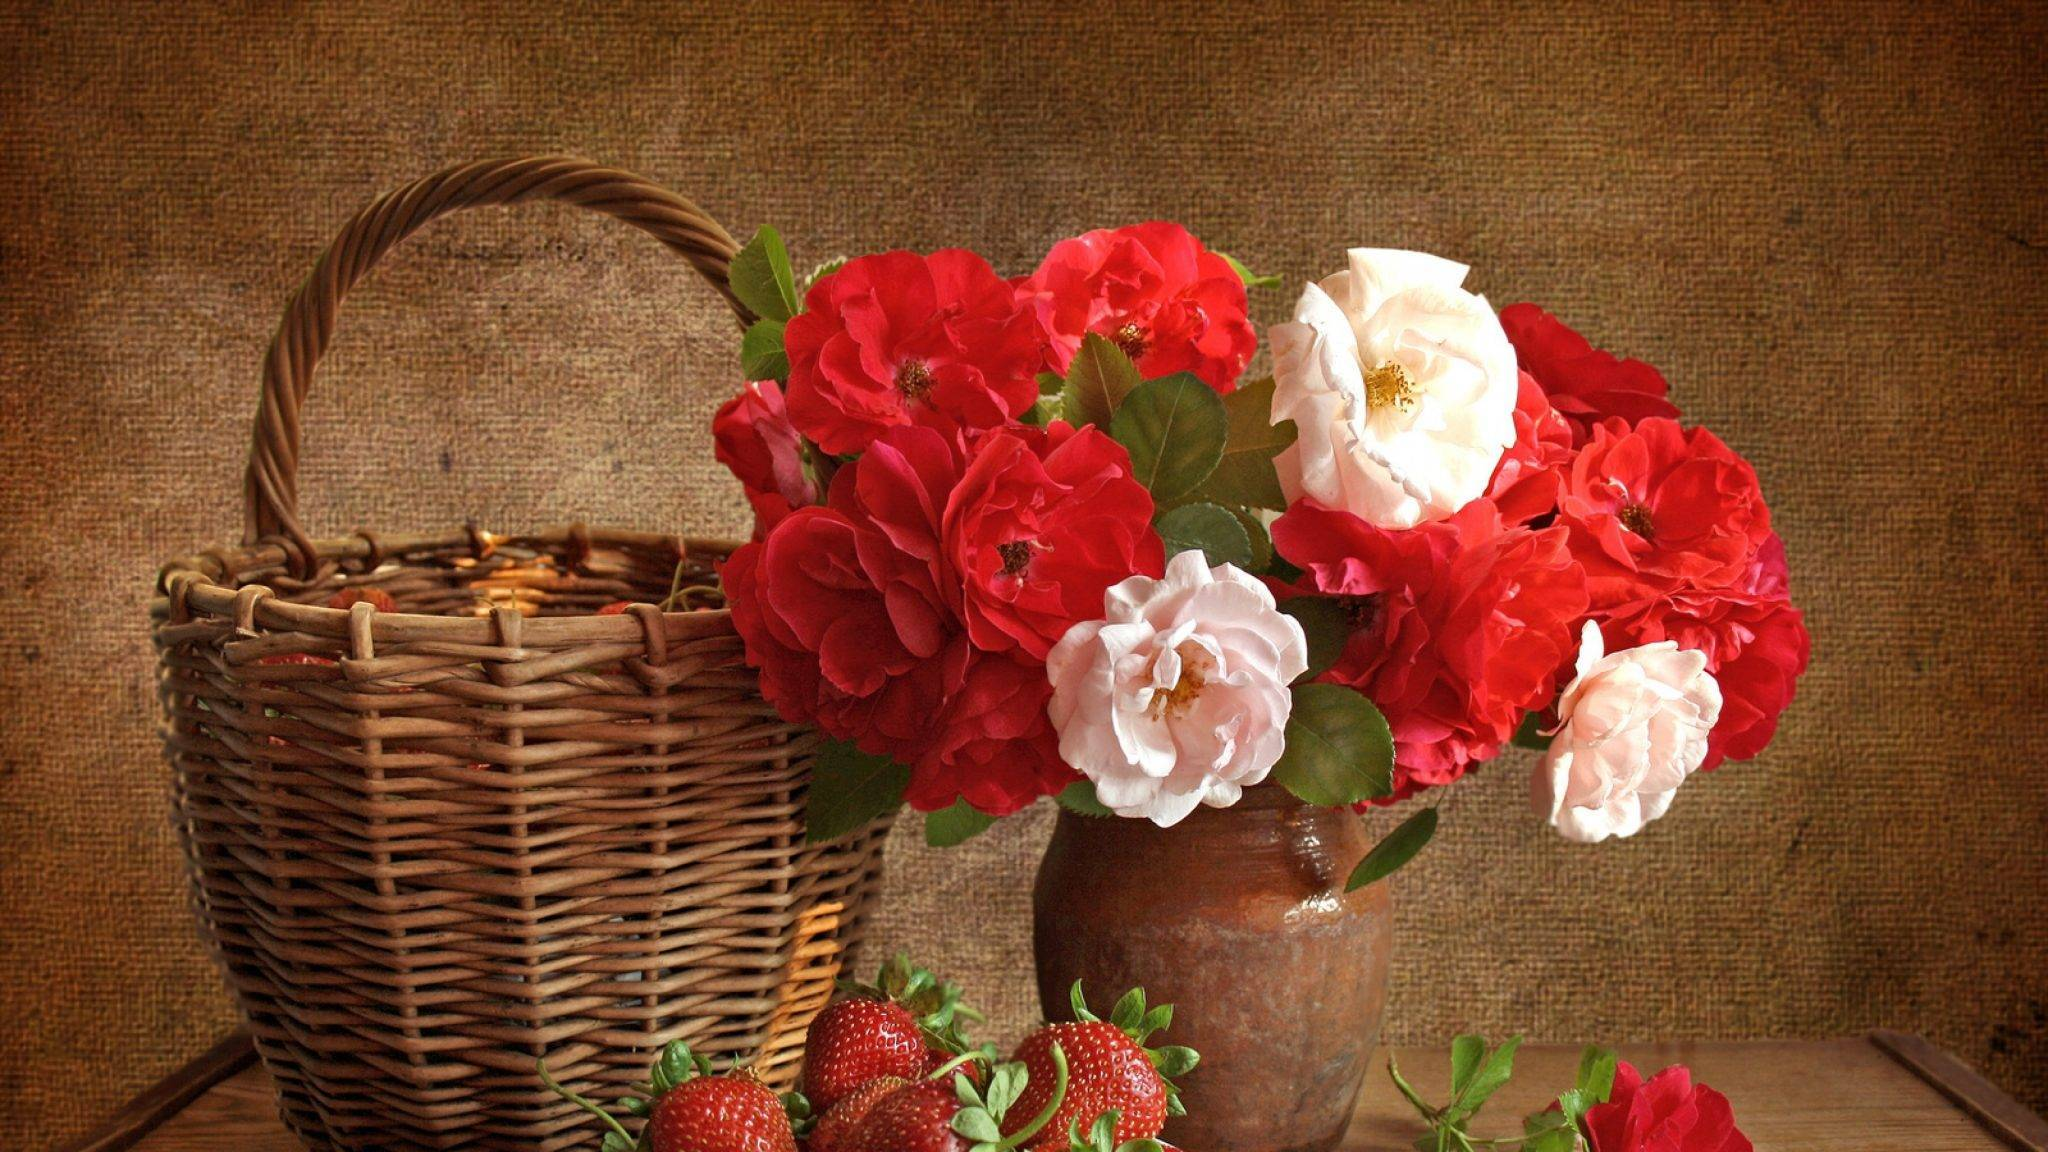 happy-rose-day-hd-images-free-download